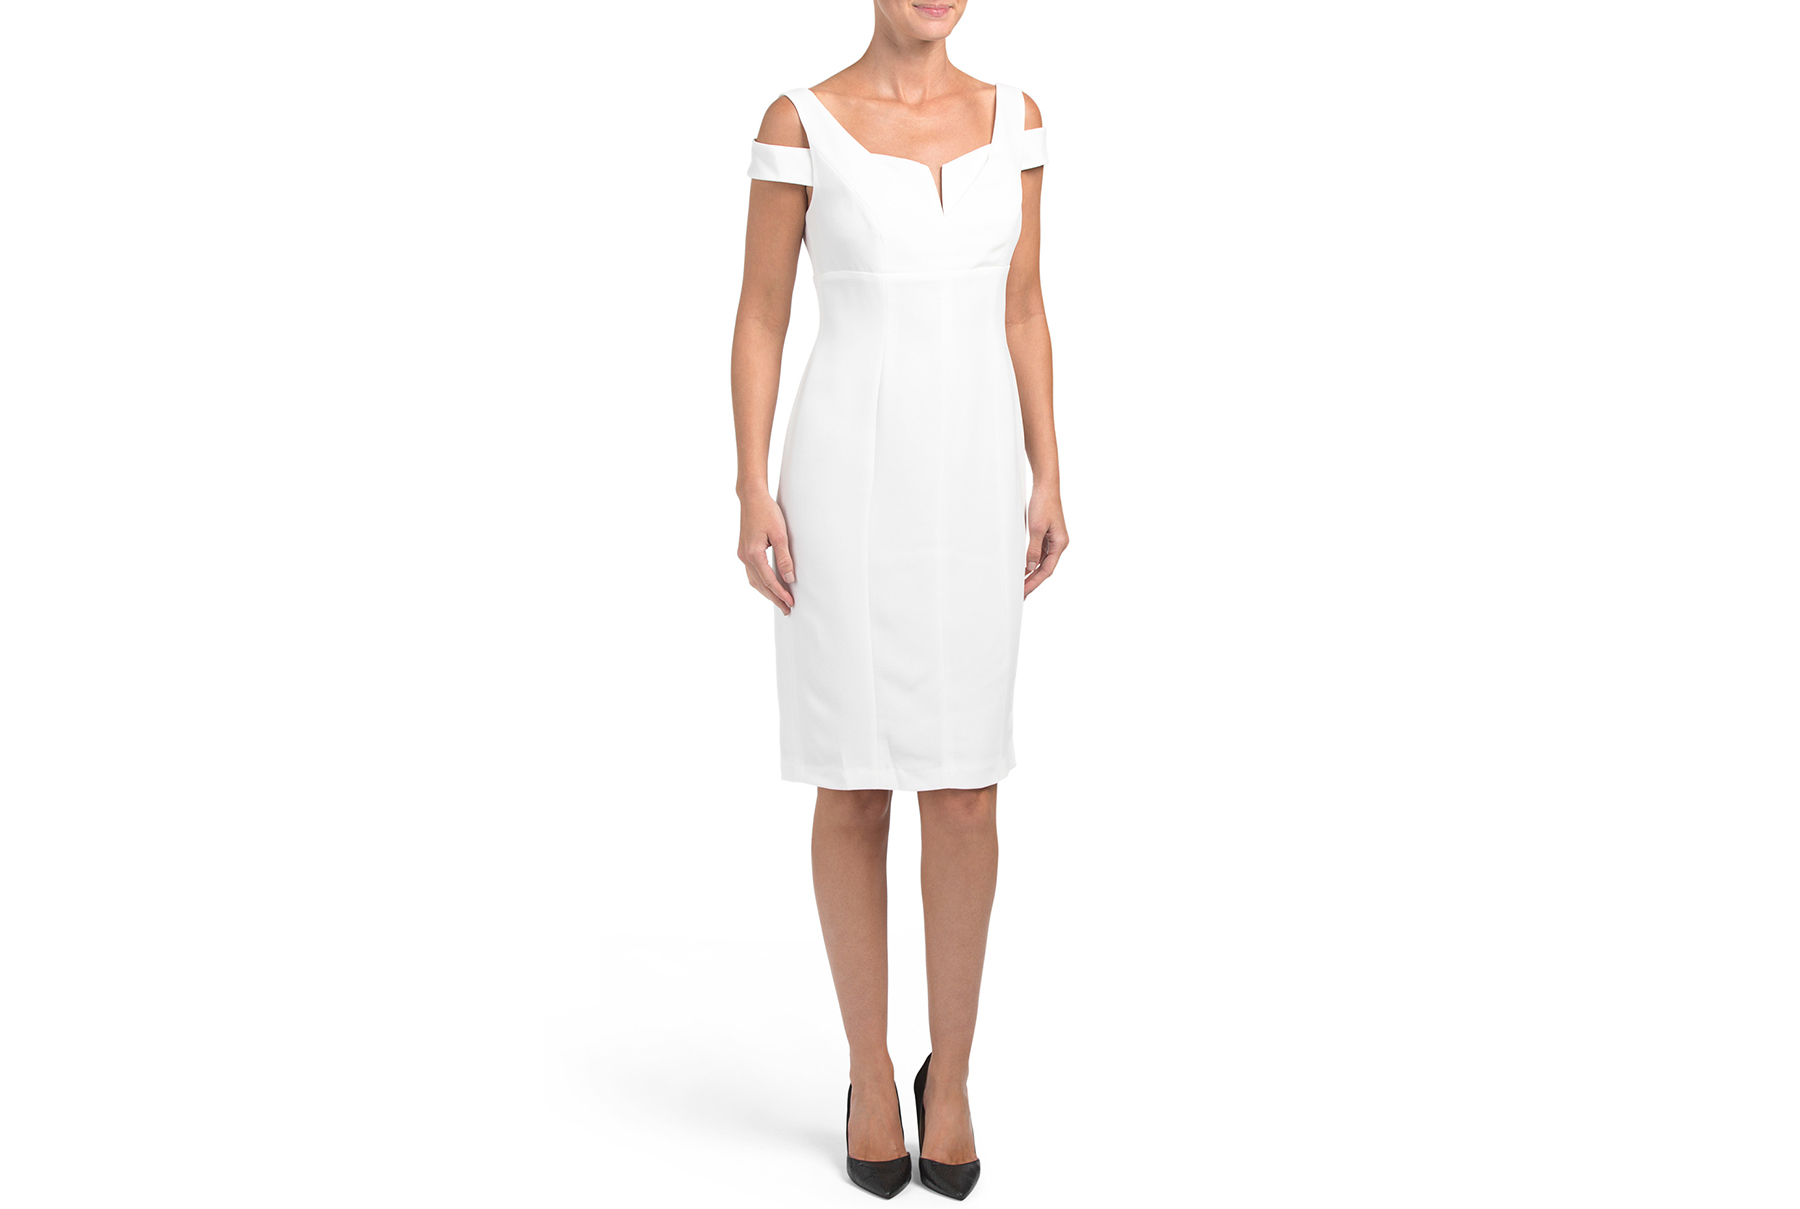 Adrianna Papell Solid Crepe Empire Dress